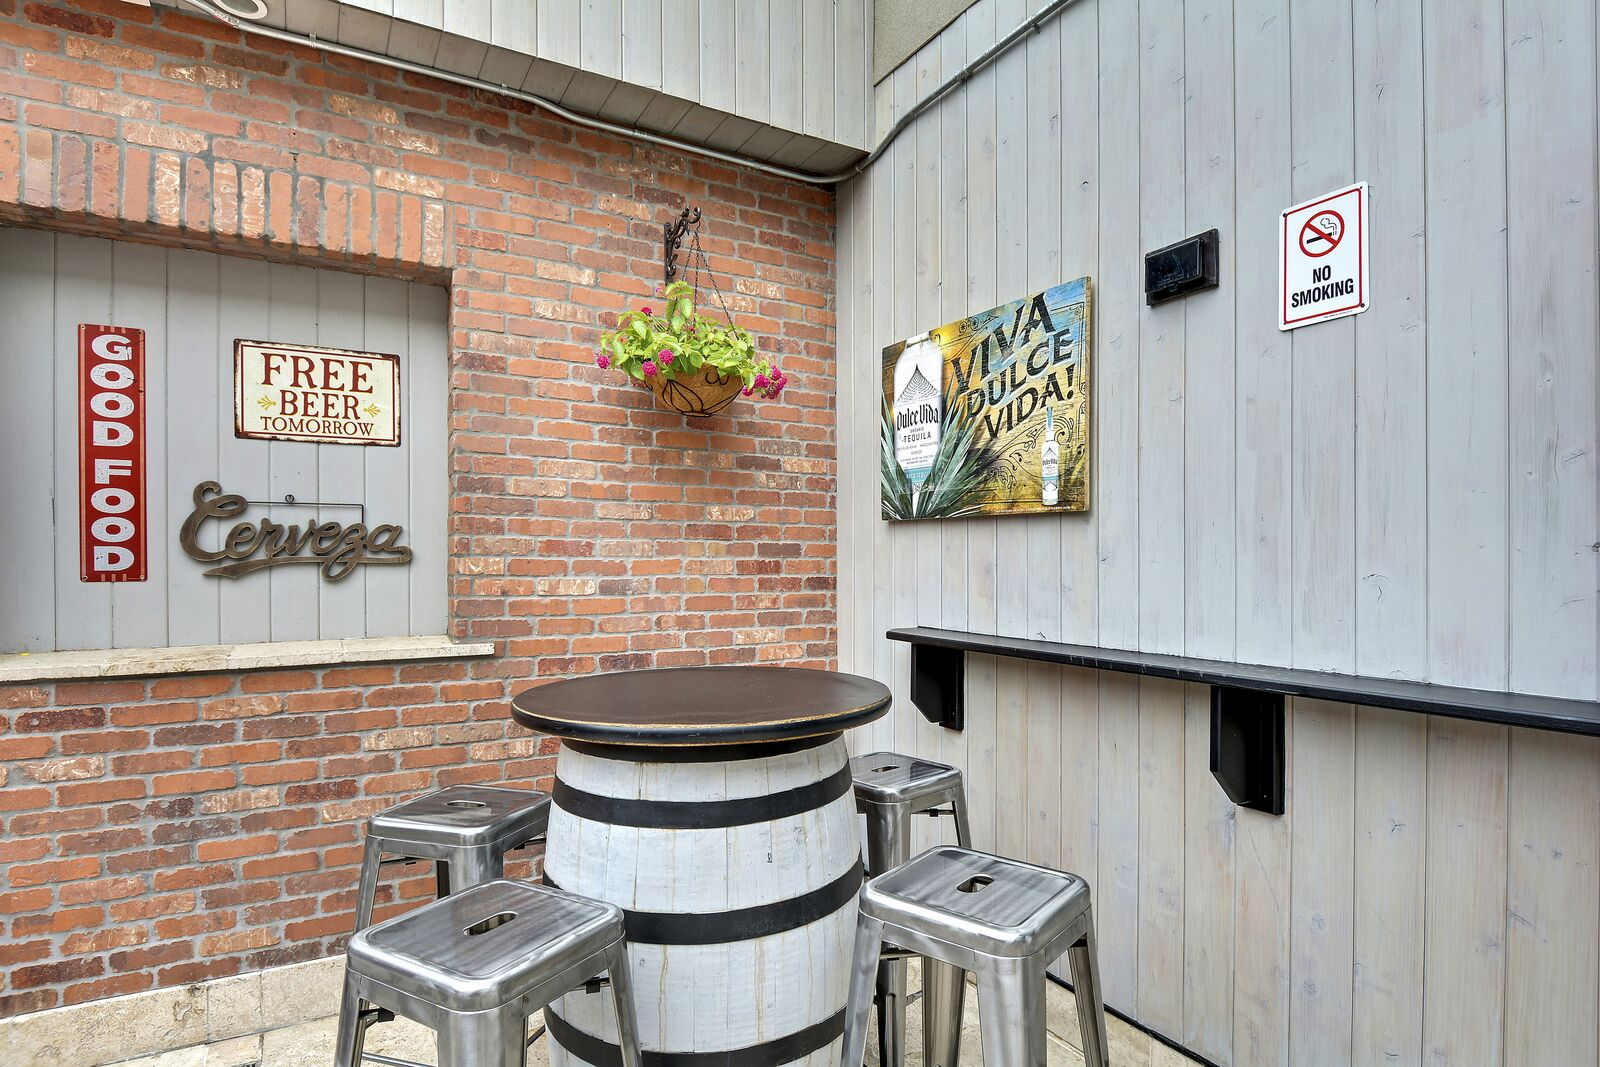 outdoor view of a barrell table with stools and signs on the walls